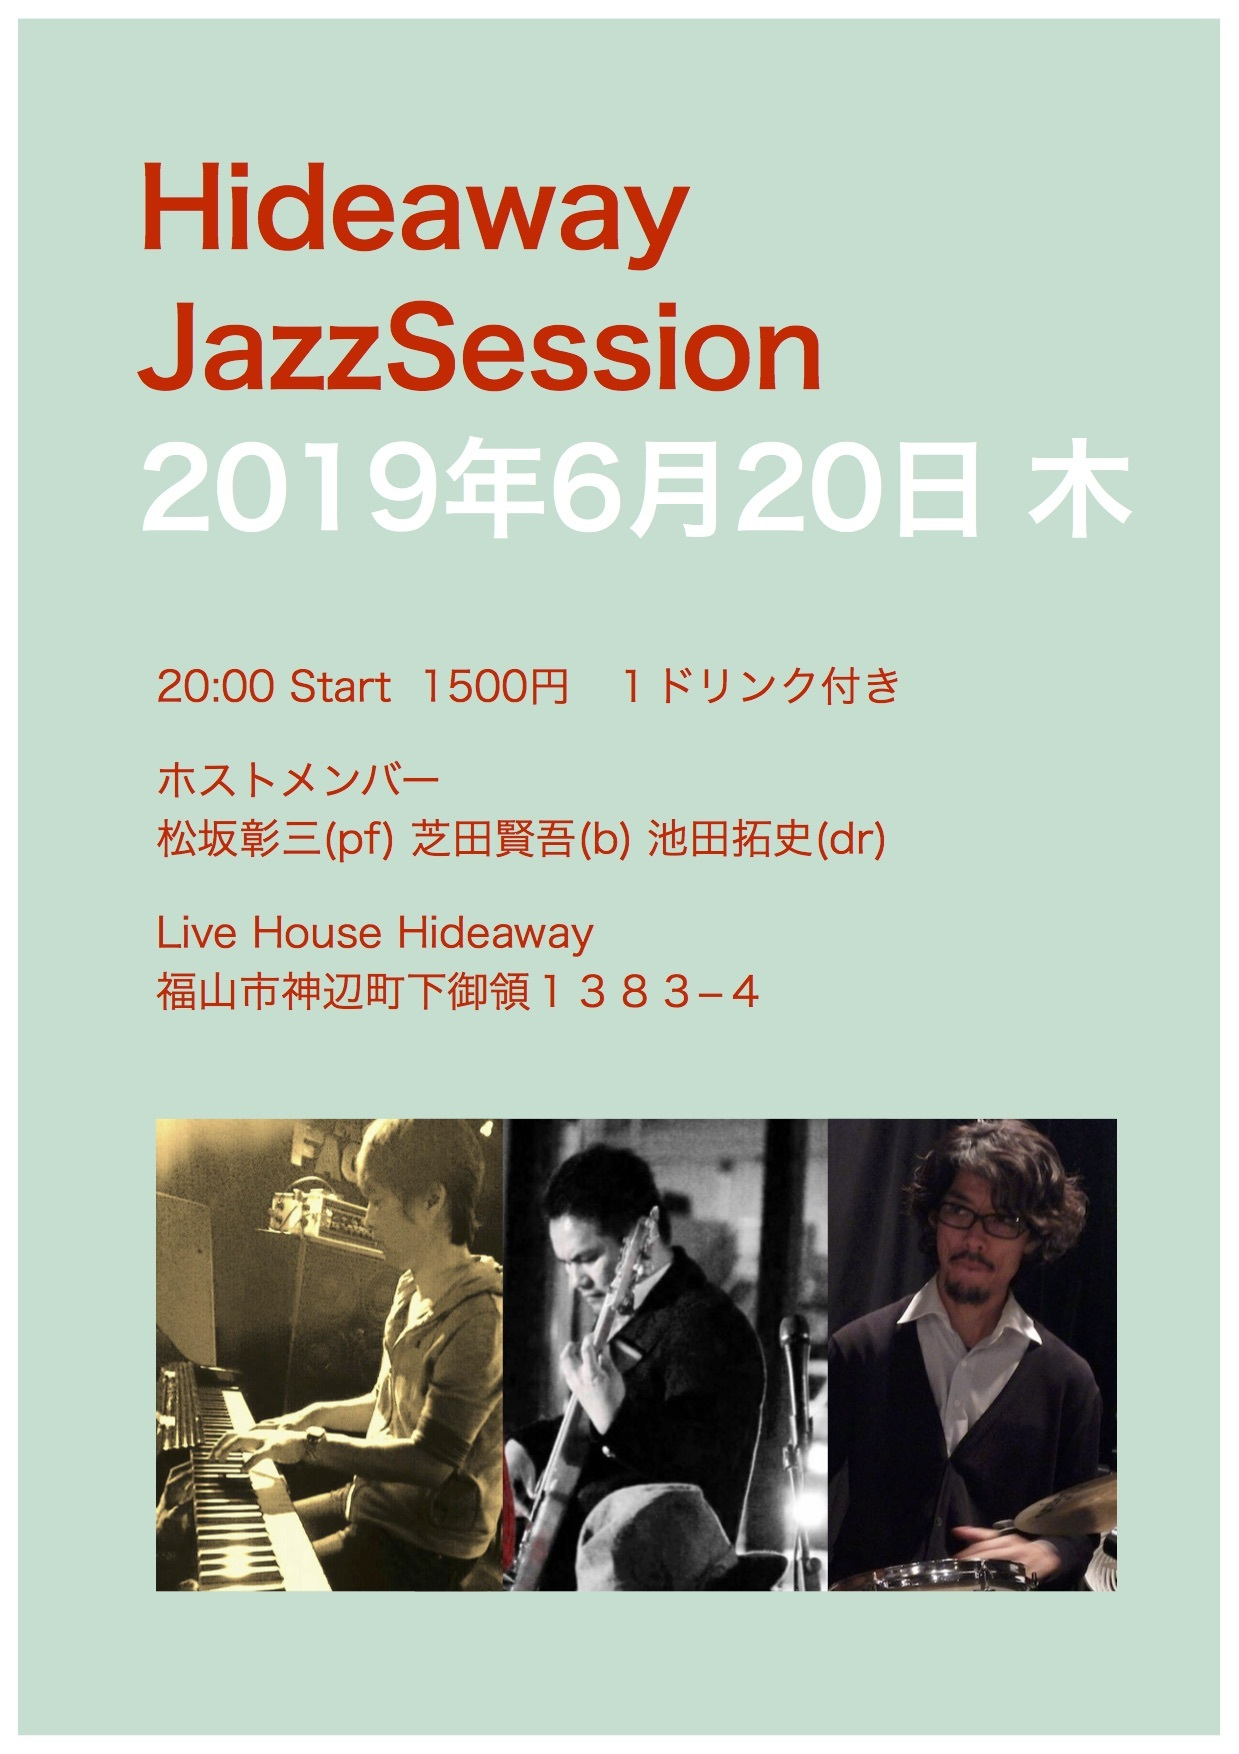 newsession20190620.jpg